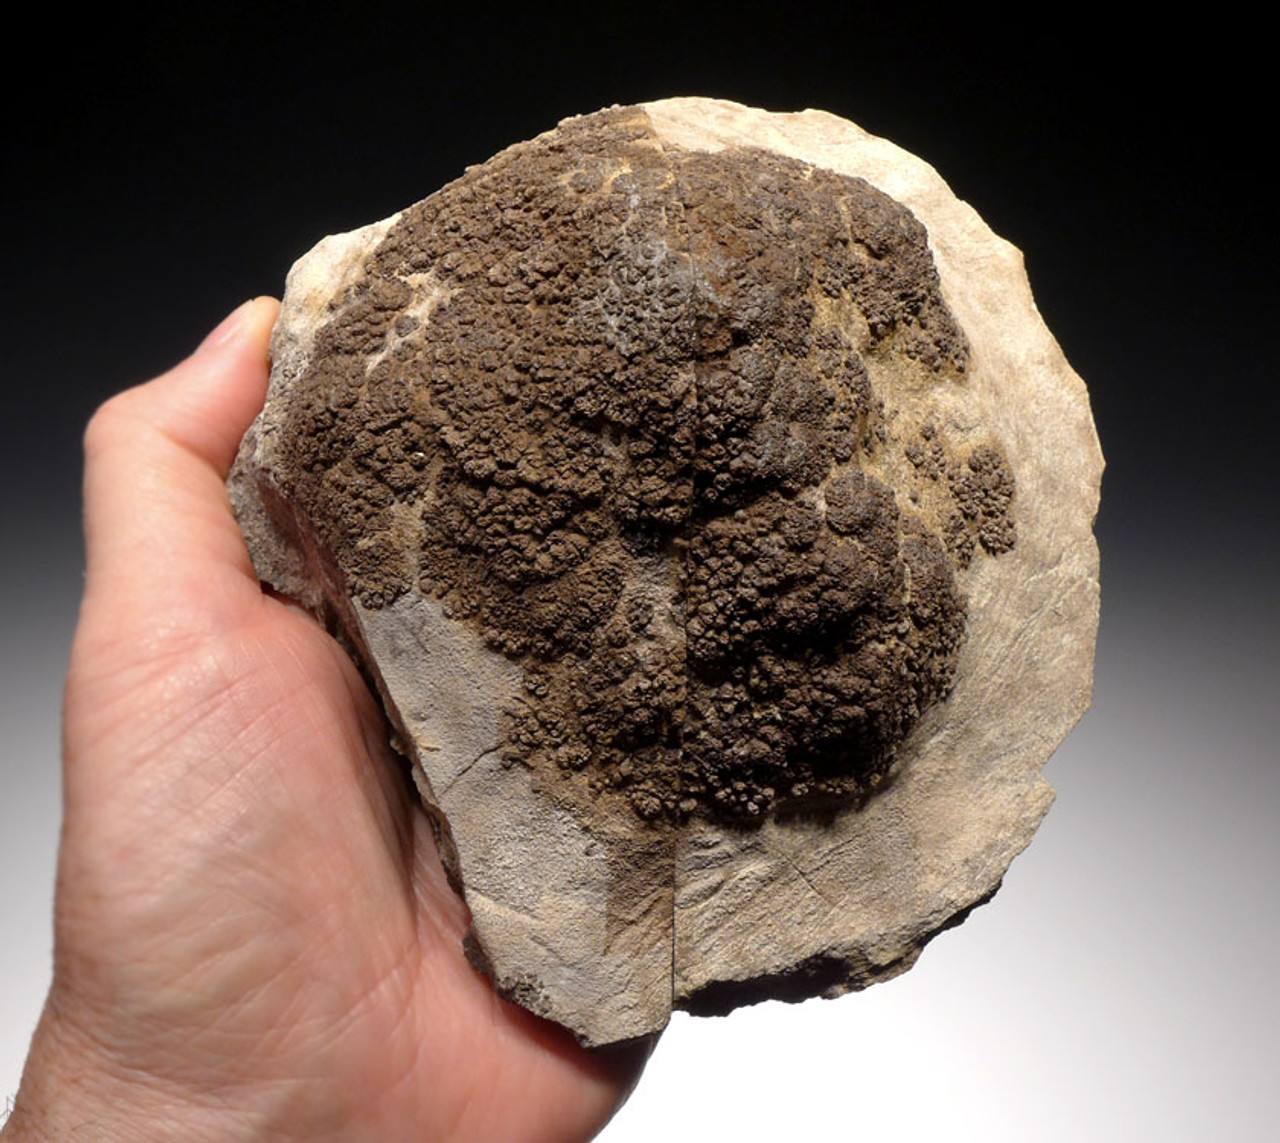 ST014 - RARE SLICED AND POLISHED 3D FRESHWATER FOSSIL STROMATOLITE COLONY FROM THE LOWER PERMIAN OF GERMANY